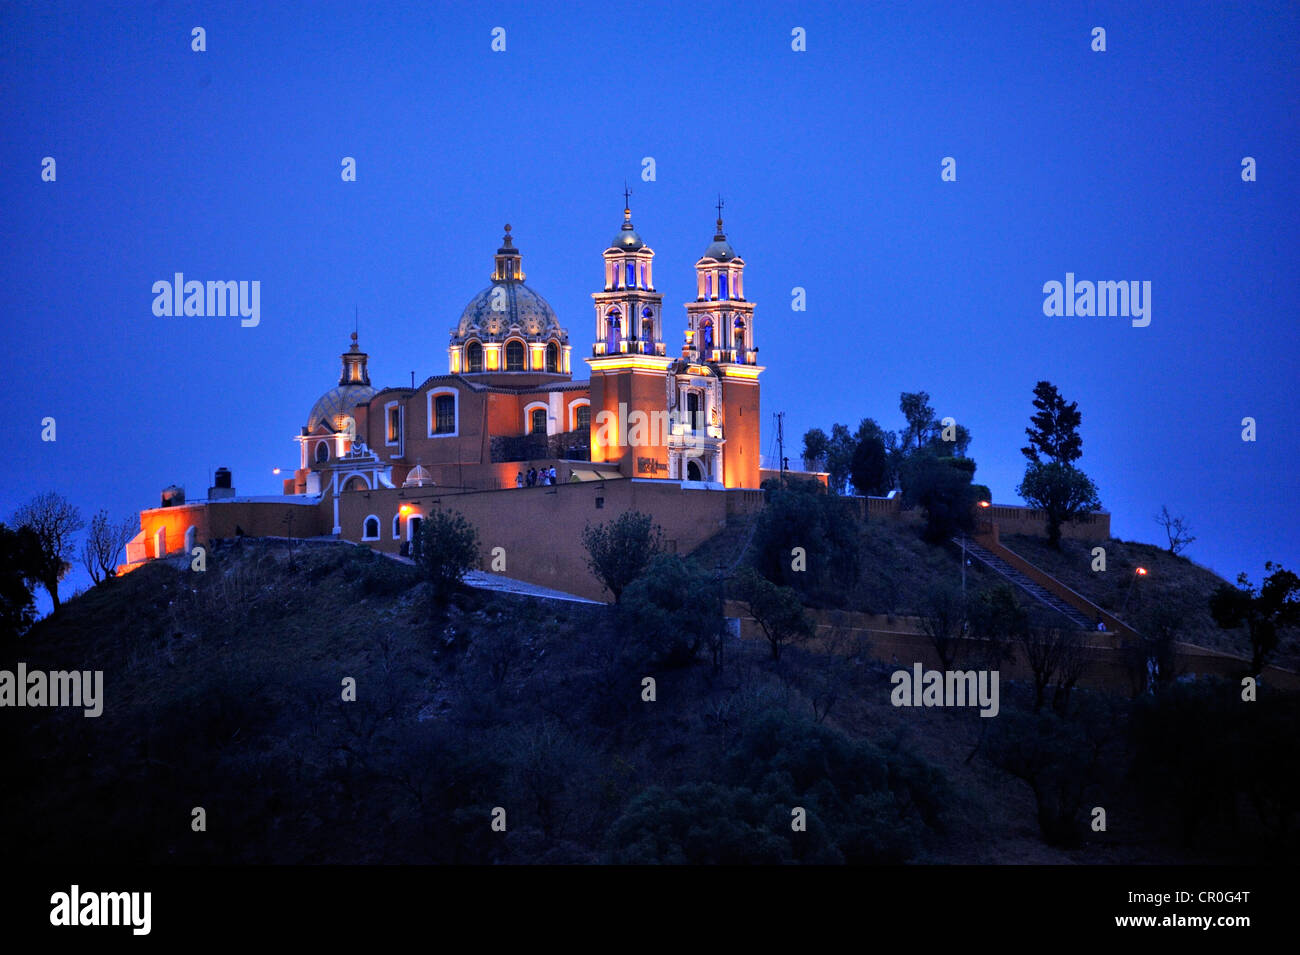 Church of Iglesia Nuestra Senora de los Remedios on the ruins of the pre-Hispanic Pyramid of Cholula at night, , - Stock Image